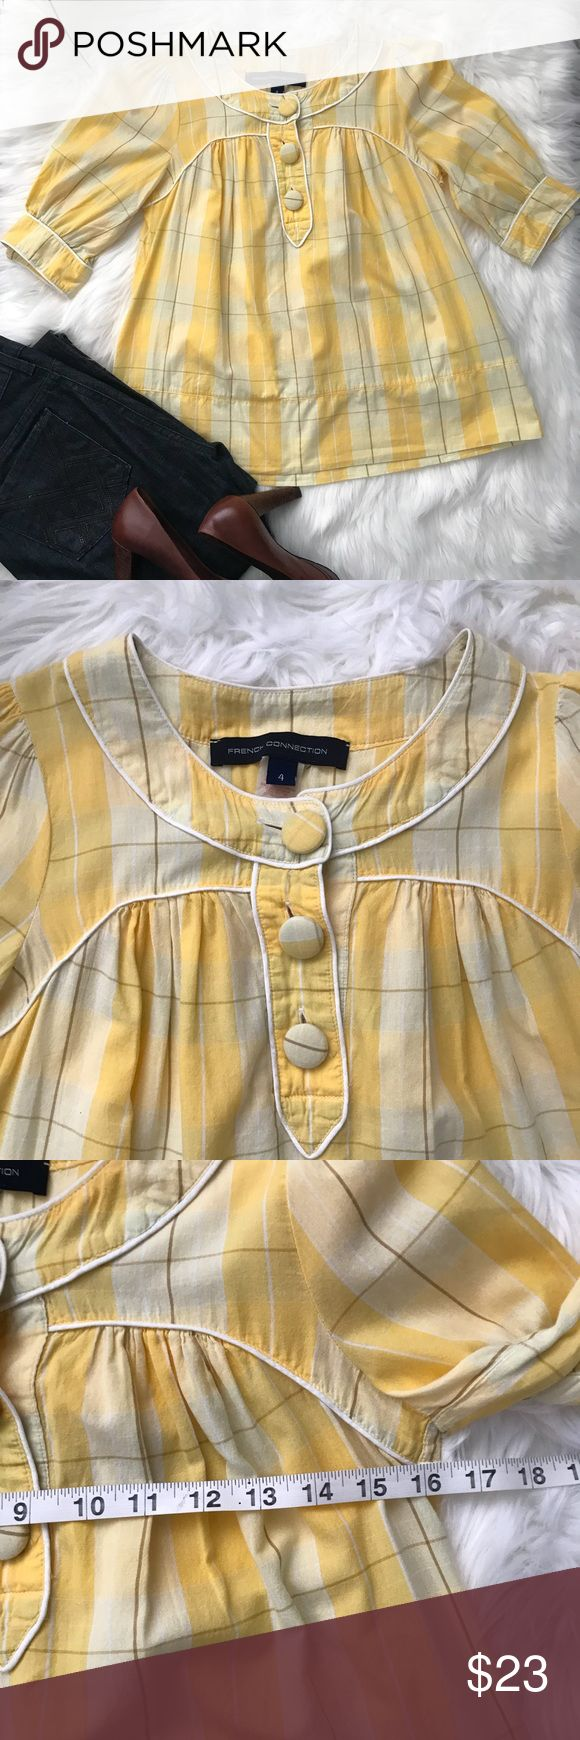 French Connection Yellow Short Sleeved Blouse Sz 4 This blouse is too cute! 🌼🍂. It has fabric covered oversized buttons. Perfect with jeans. EUC. There are no rips, stains or tears. Bundle with another item and I'll send you an offer! 😉 French Connection Tops